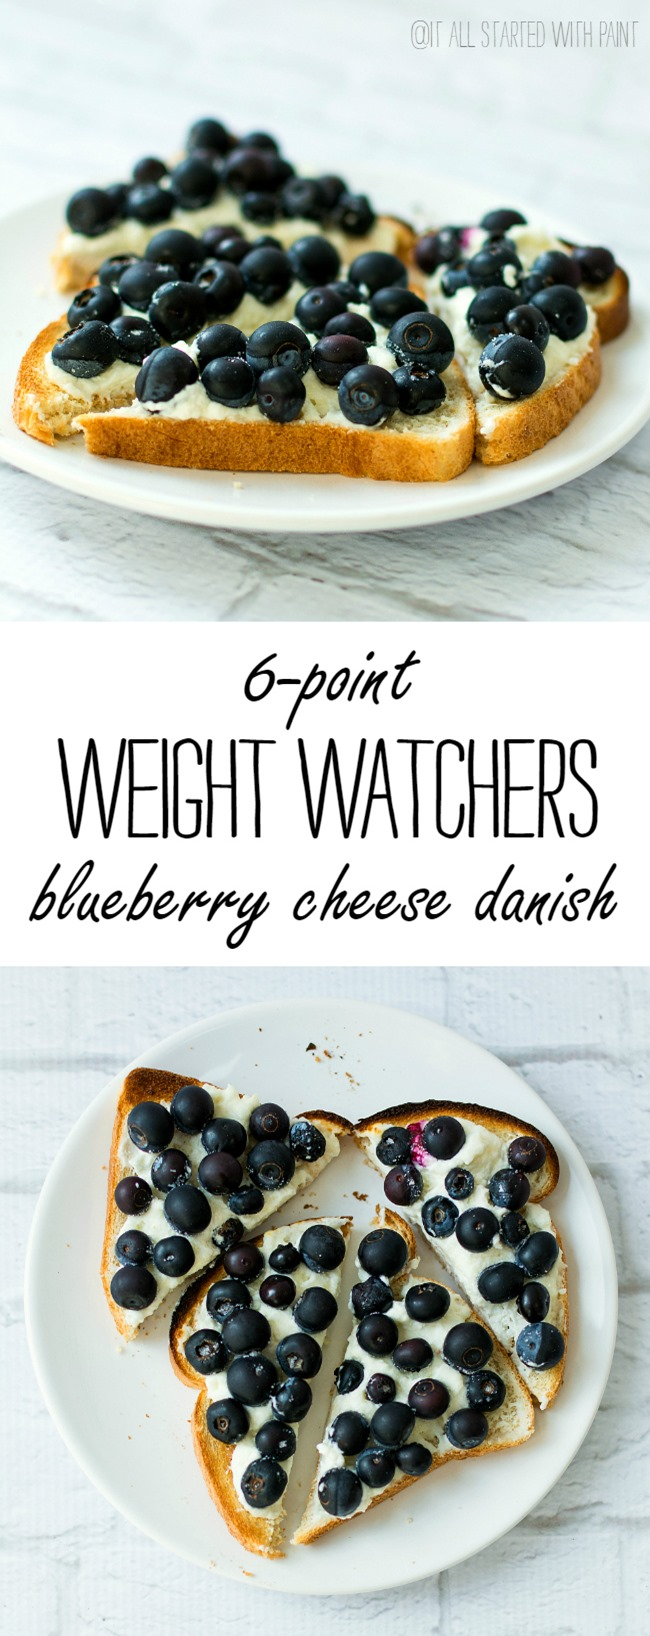 weight-watchers-breakfast-recipe-ideas